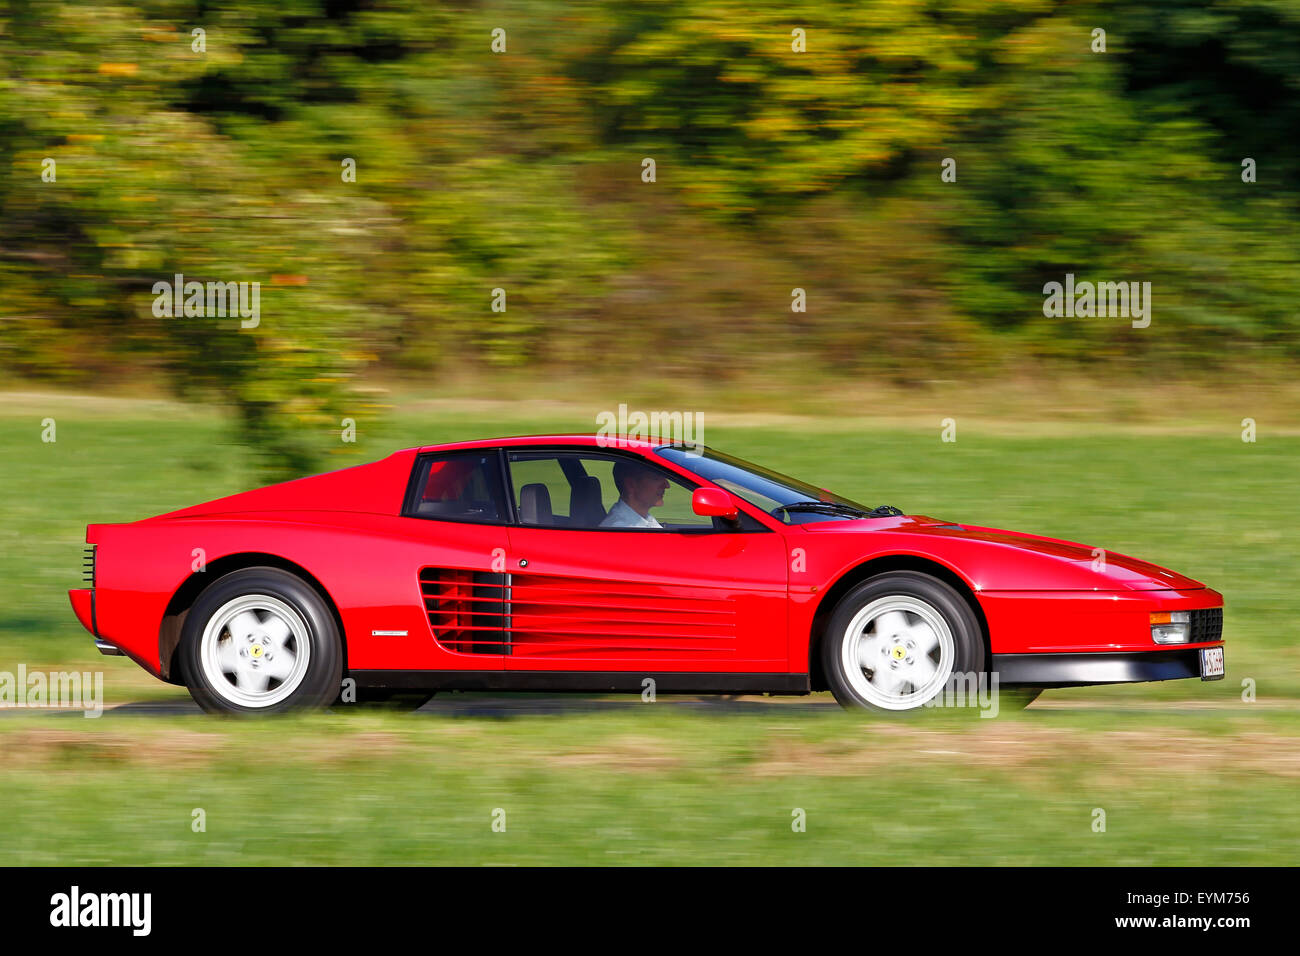 Car Ferrari Testarossa Vintage Car High Resolution Stock Photography And Images Alamy